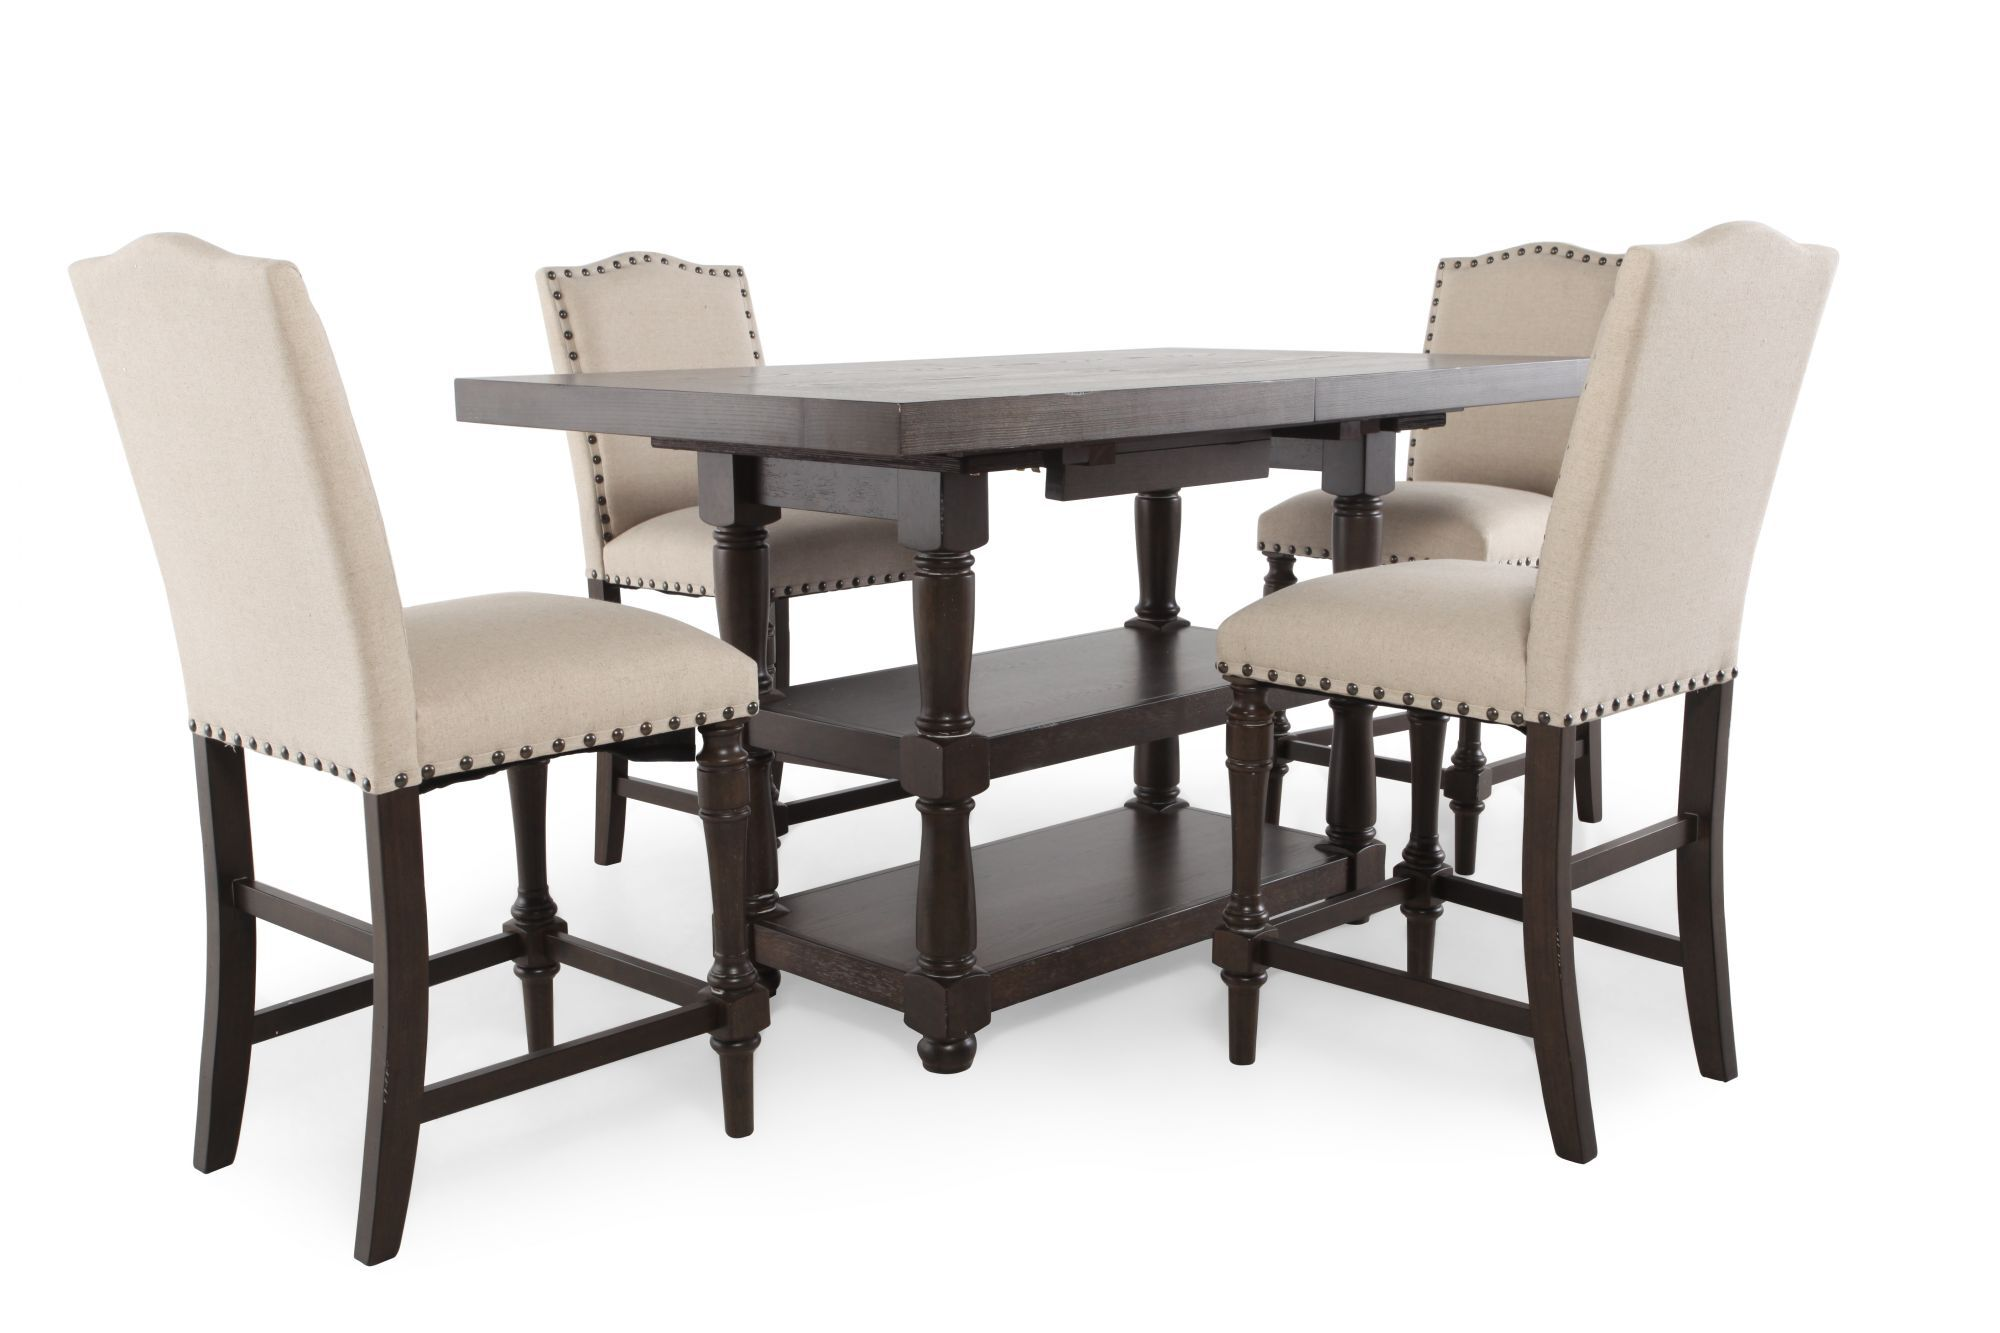 tall kitchen tables and chairs transport wheelchair nova 5 piece pub set by winners only mathis brothers